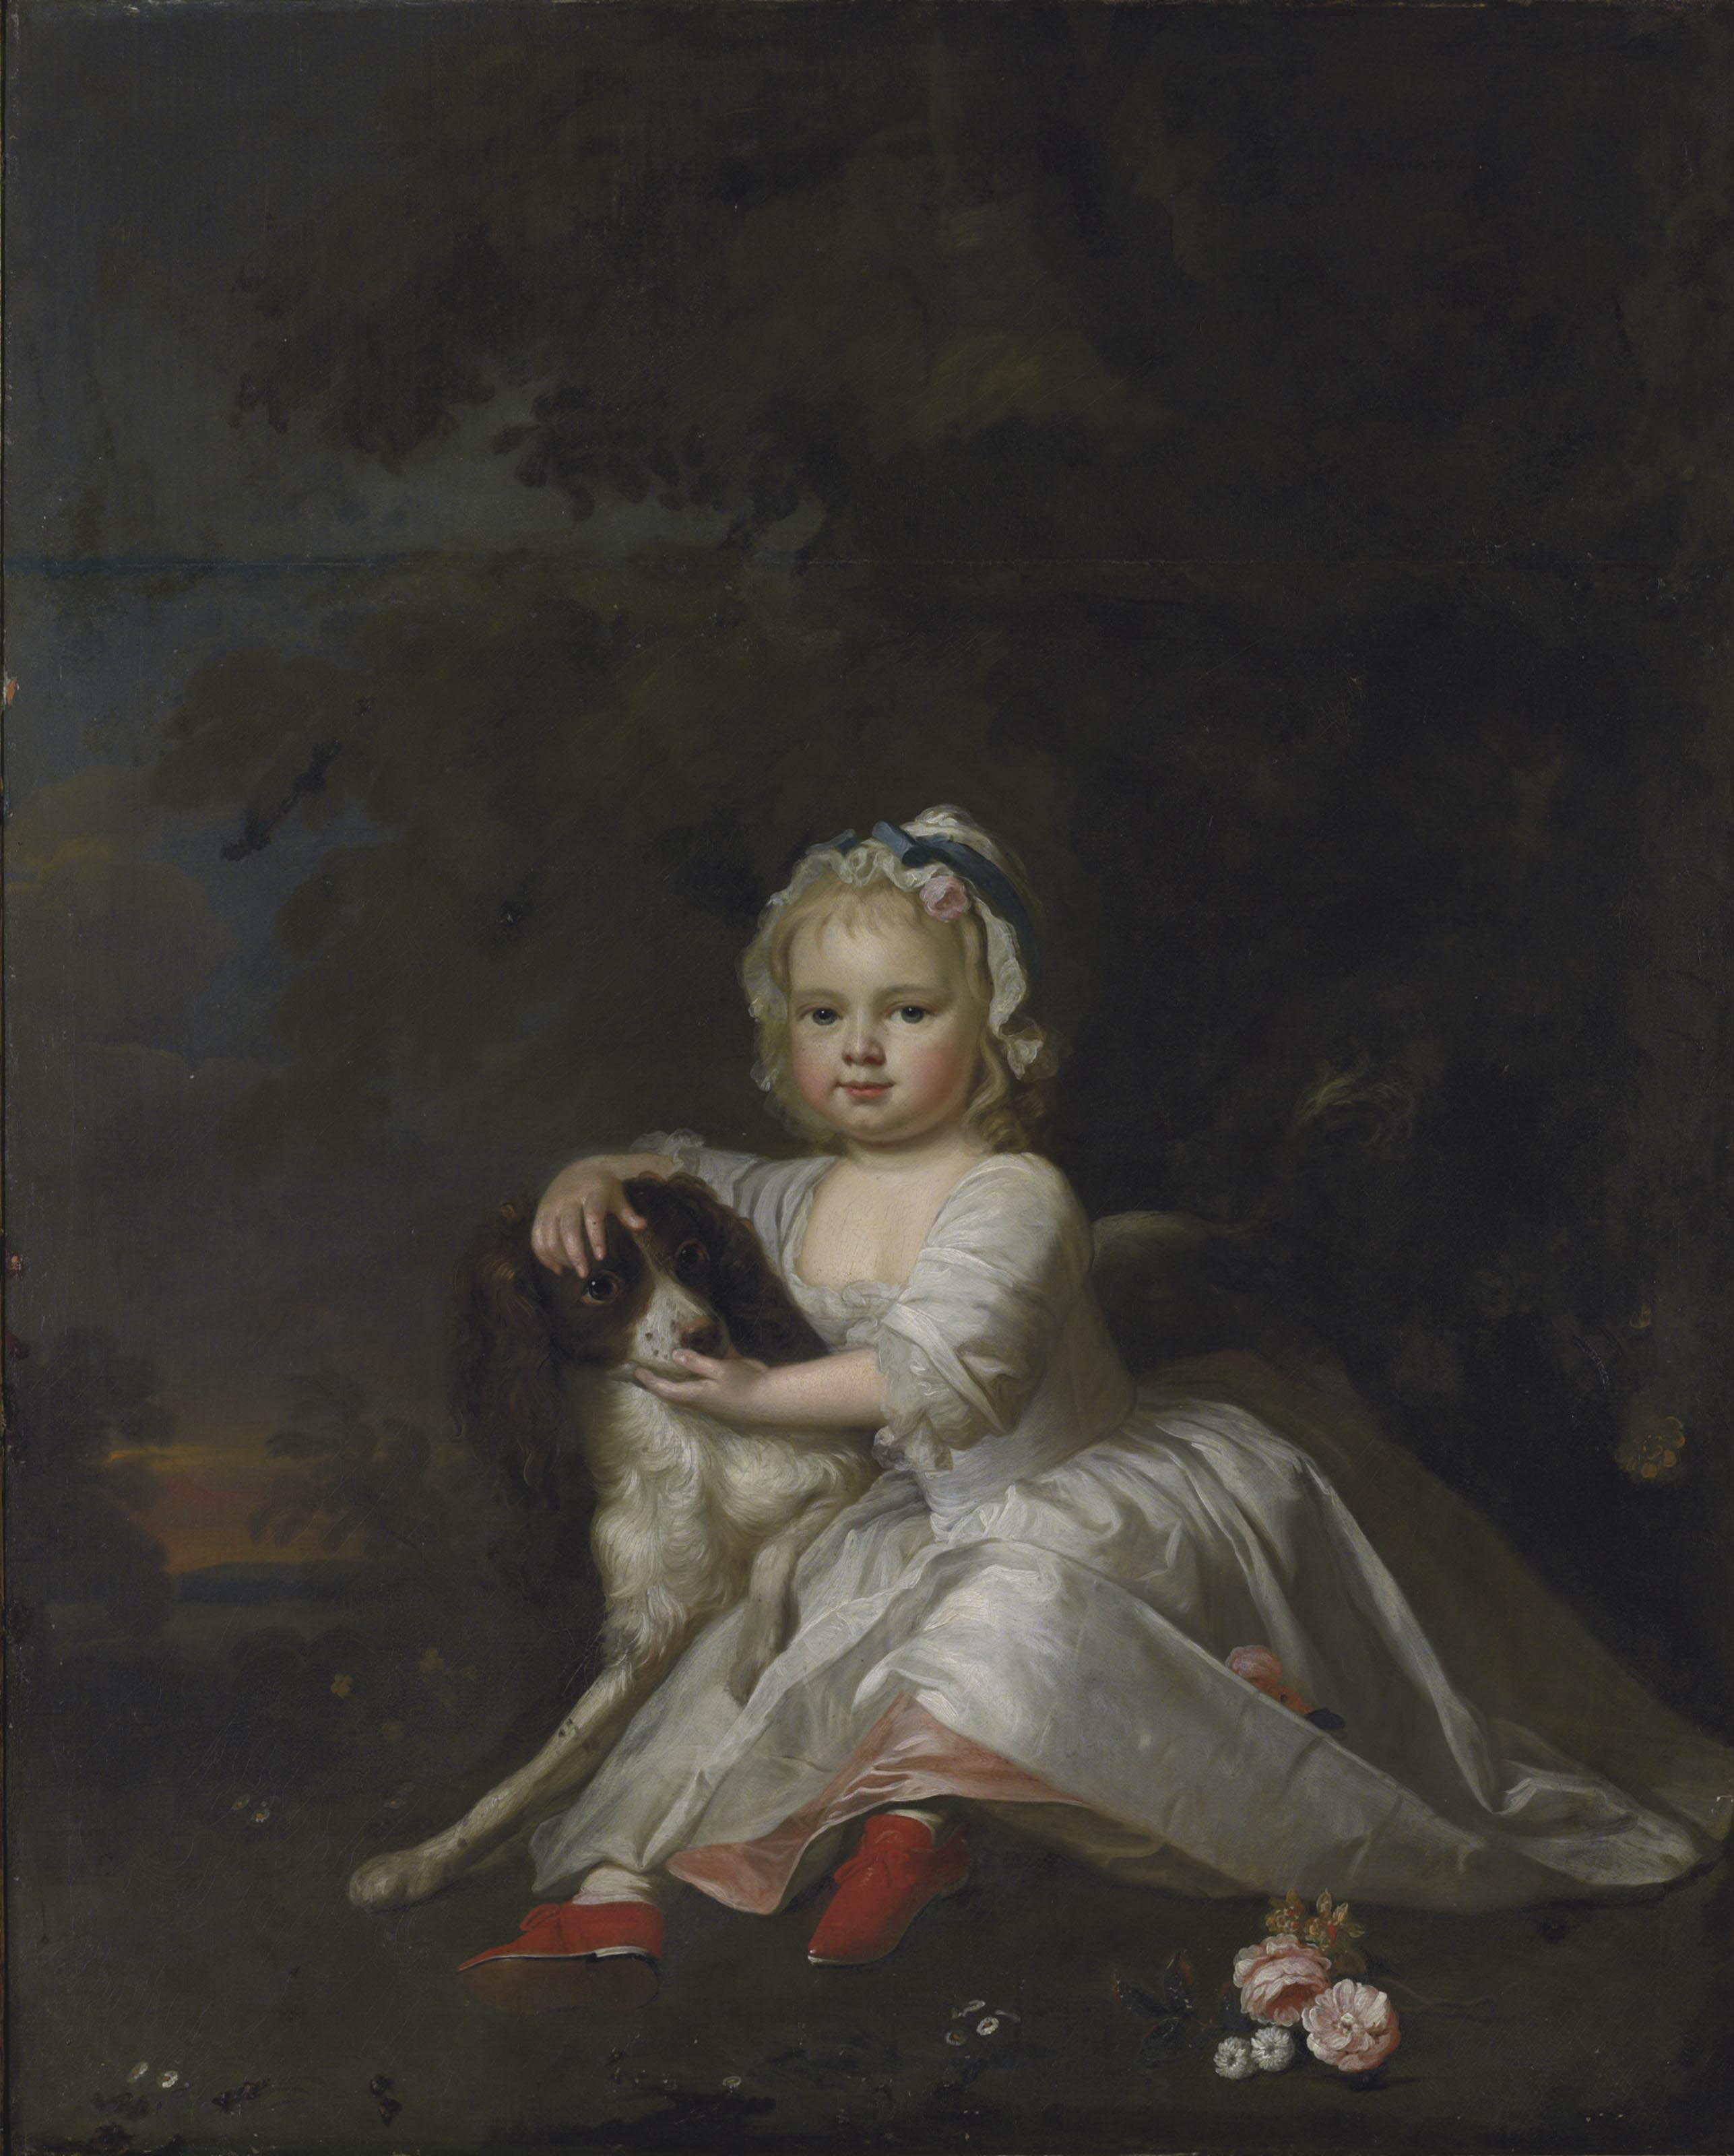 Portrait of a girl, traditionally identified as Catherine Legge (1741-1819), seated full-length, in a white dress and cap, with a spaniel, in a landscape